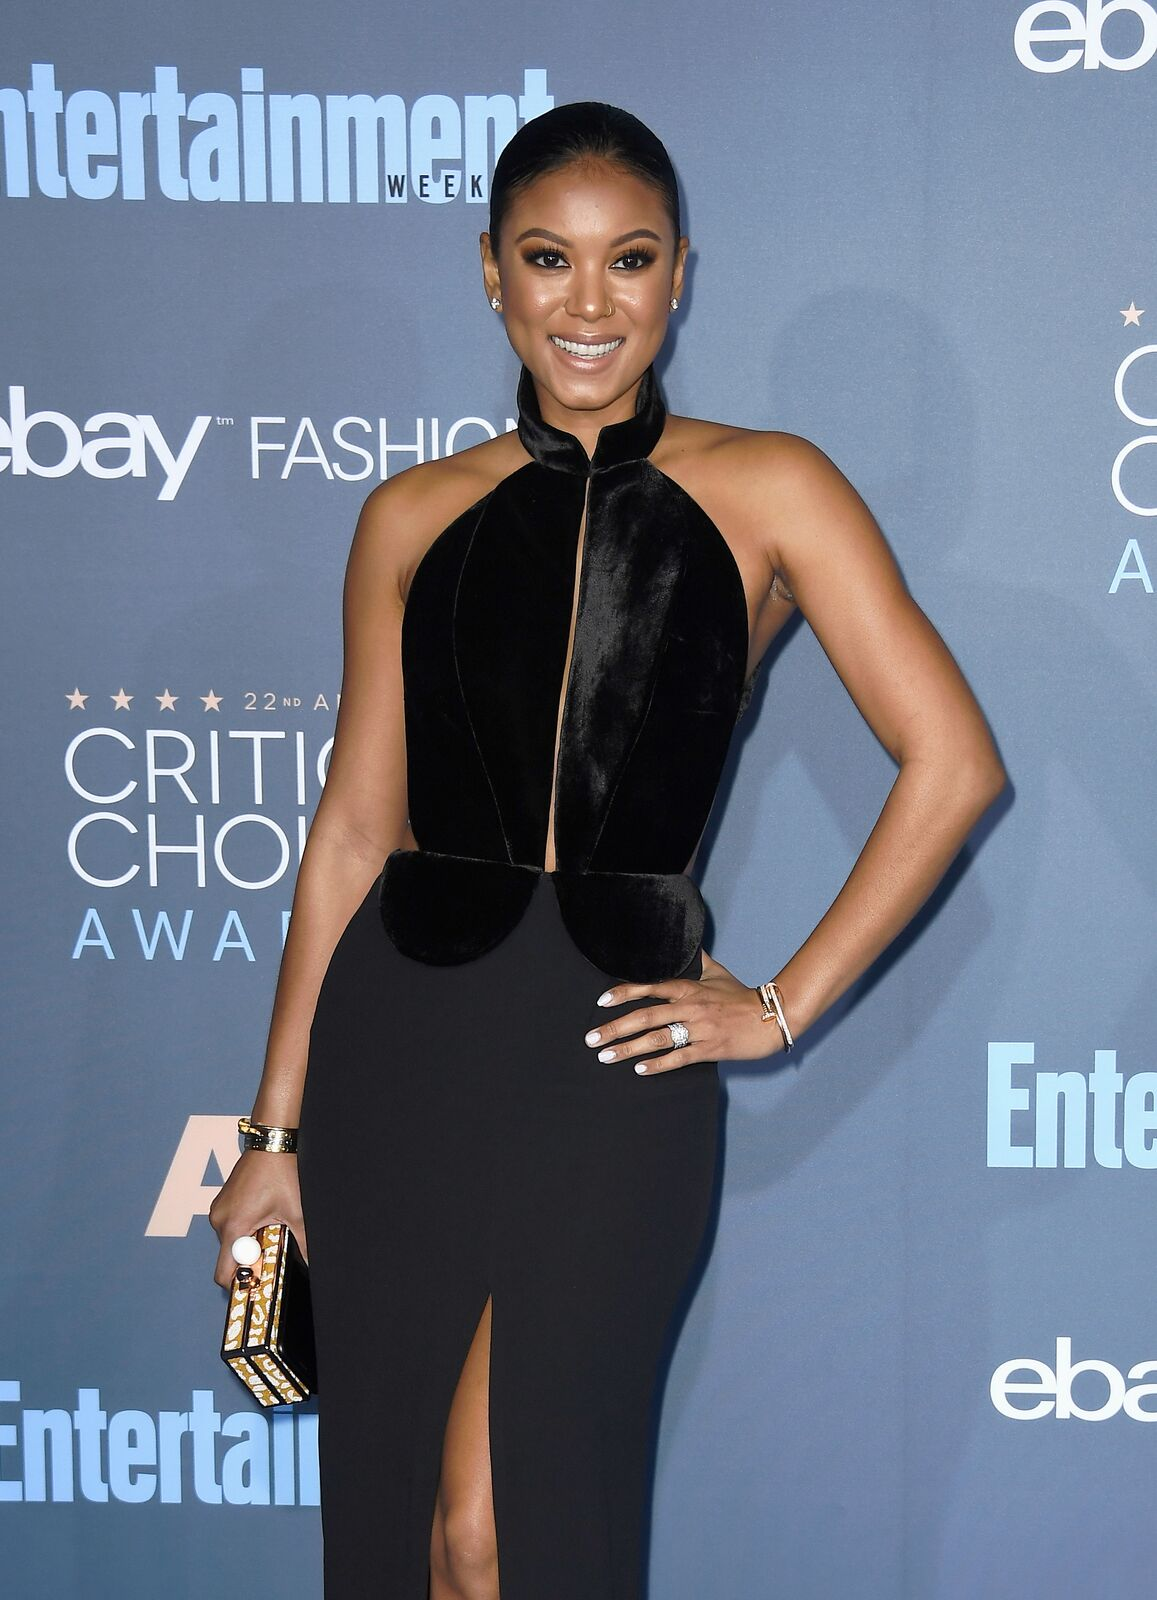 Eniko Parrish attends the 22nd Annual Critics' Choice Awards at Barker Hangar on December 11, 2016. | Source: Getty Images